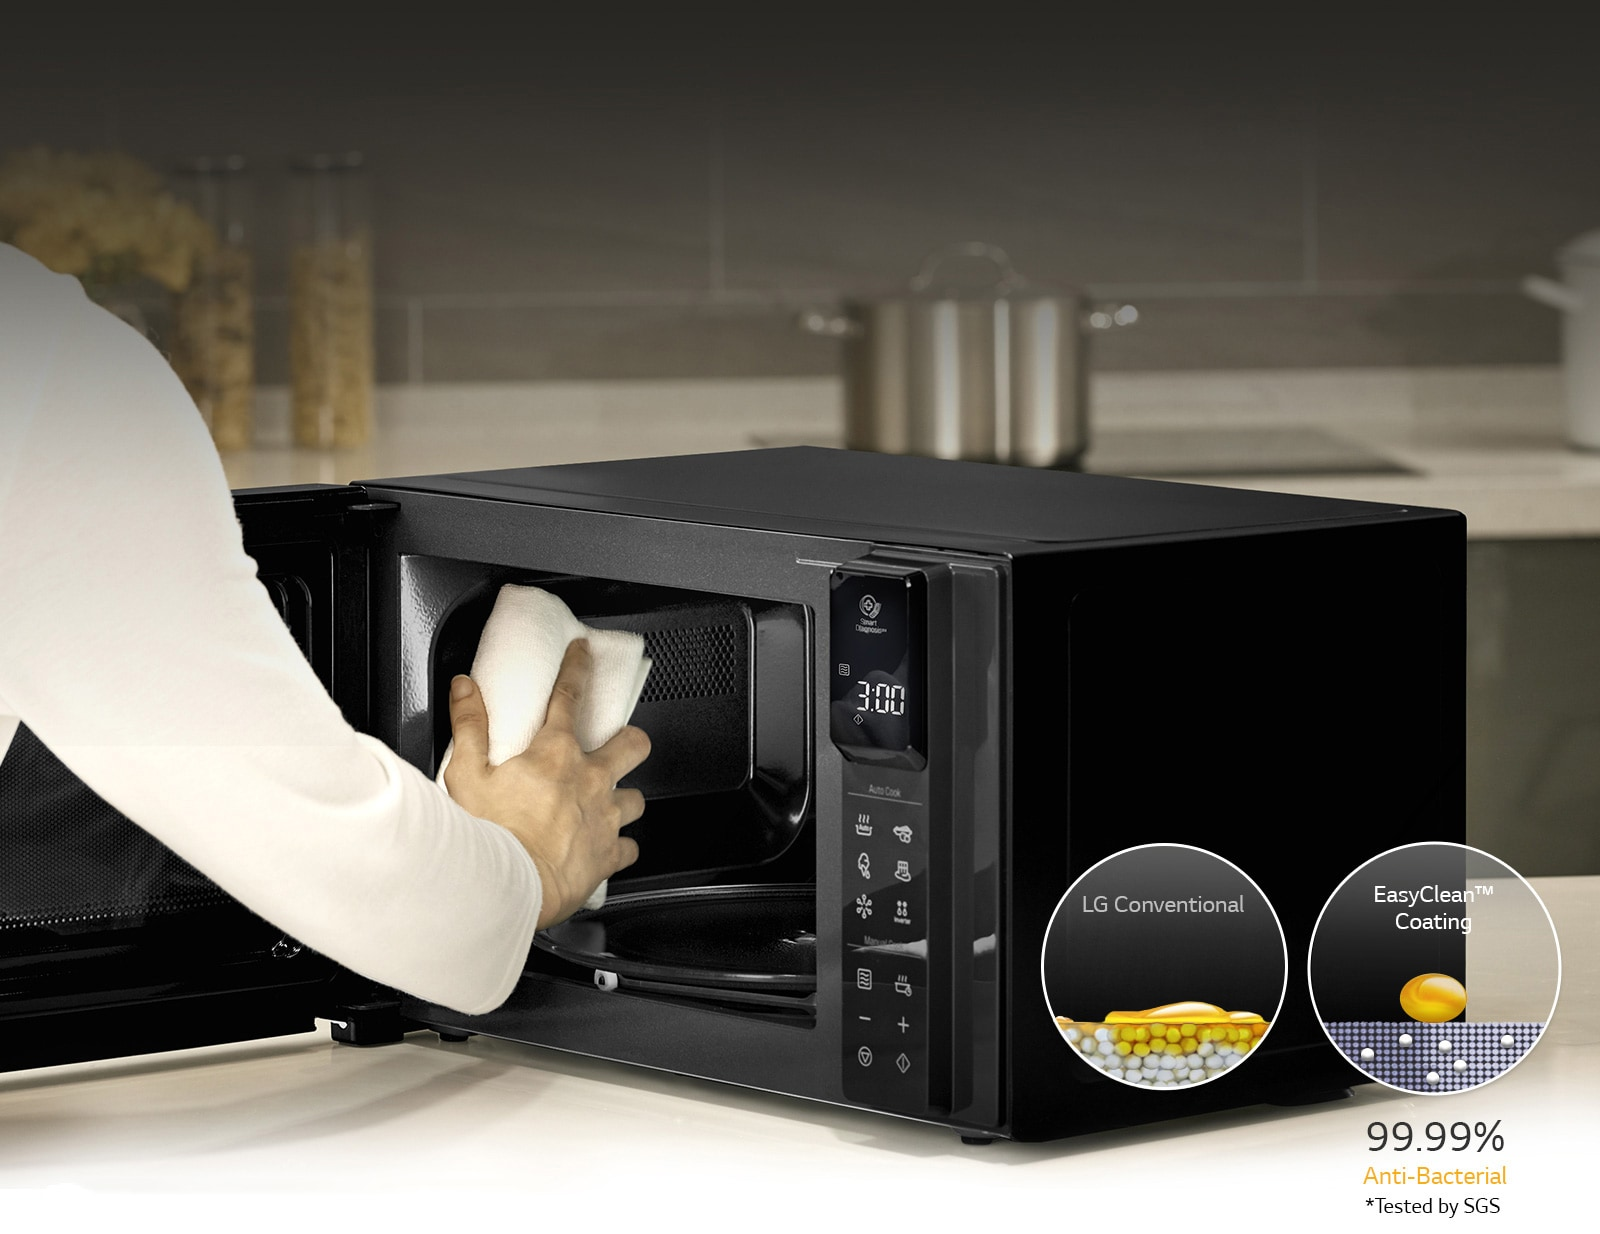 MS3636GIS_microwave-ovens_Anti-Bacterial-Coating_D